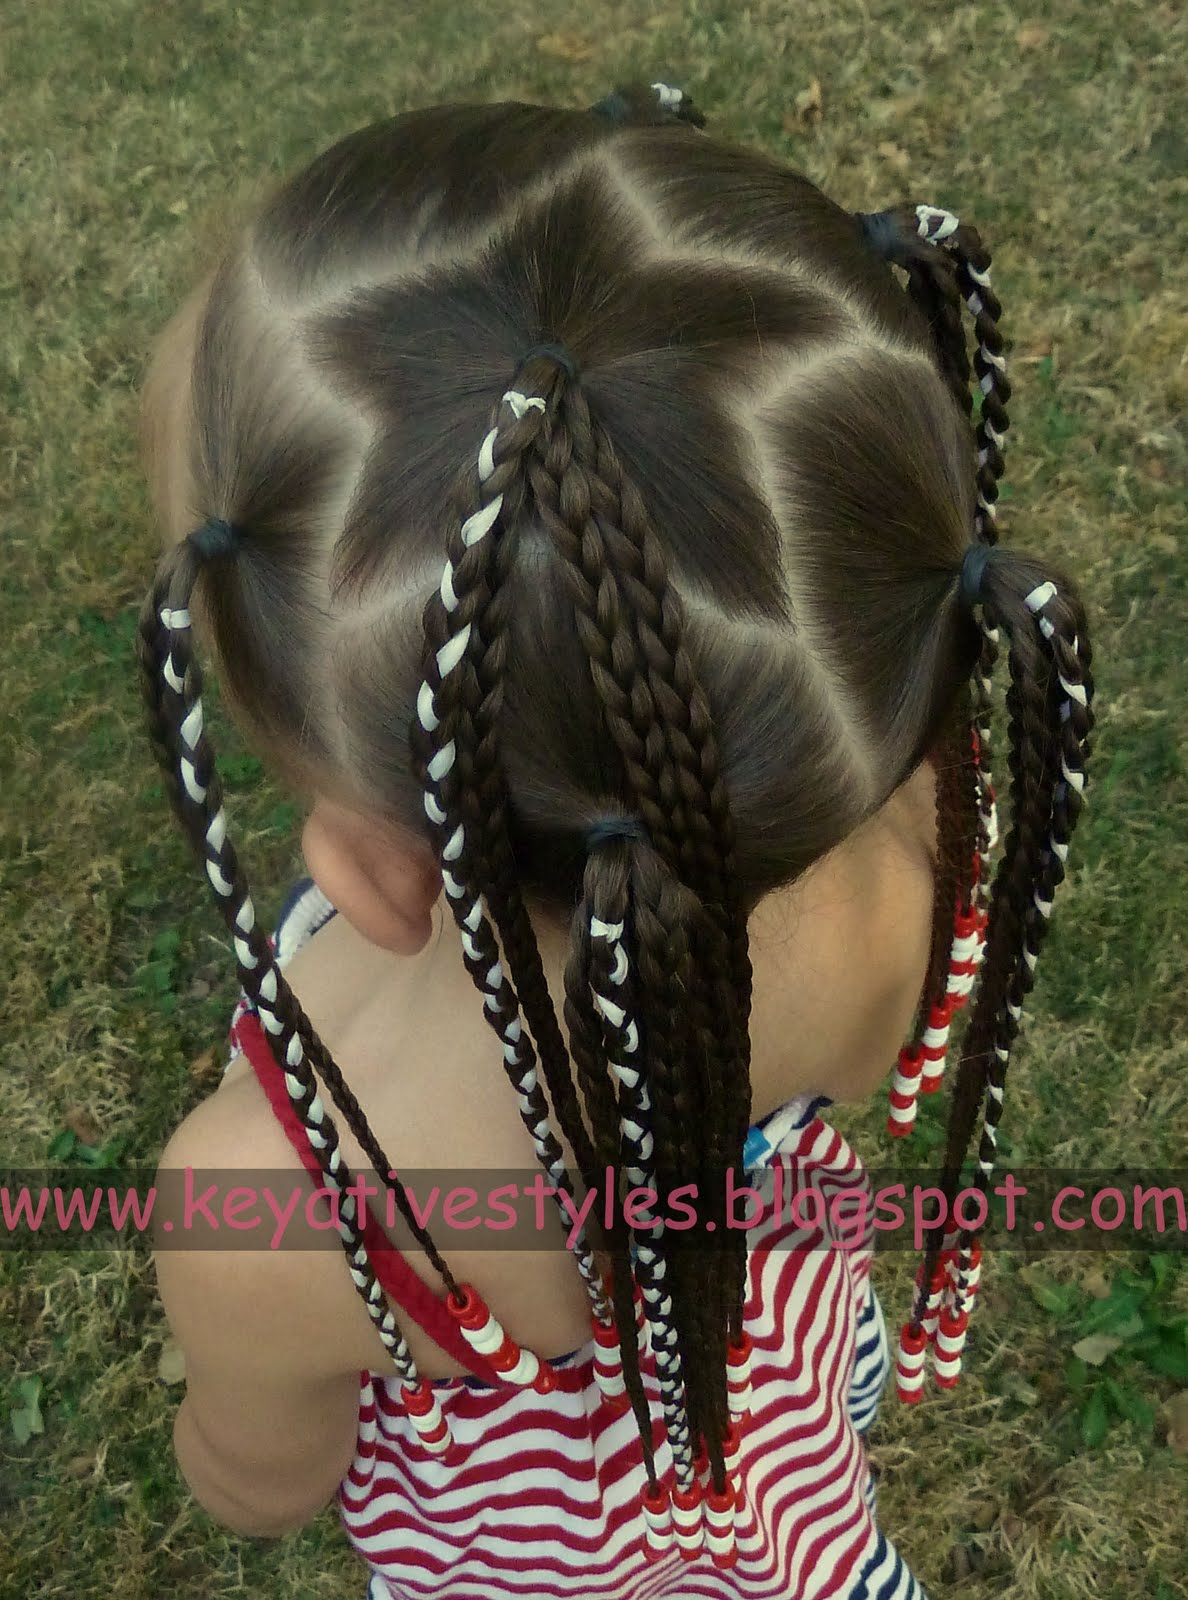 Hair today: 9/11 REMEMBRANCE: STAR PART + RIBBON BRAIDS WITH BEADS